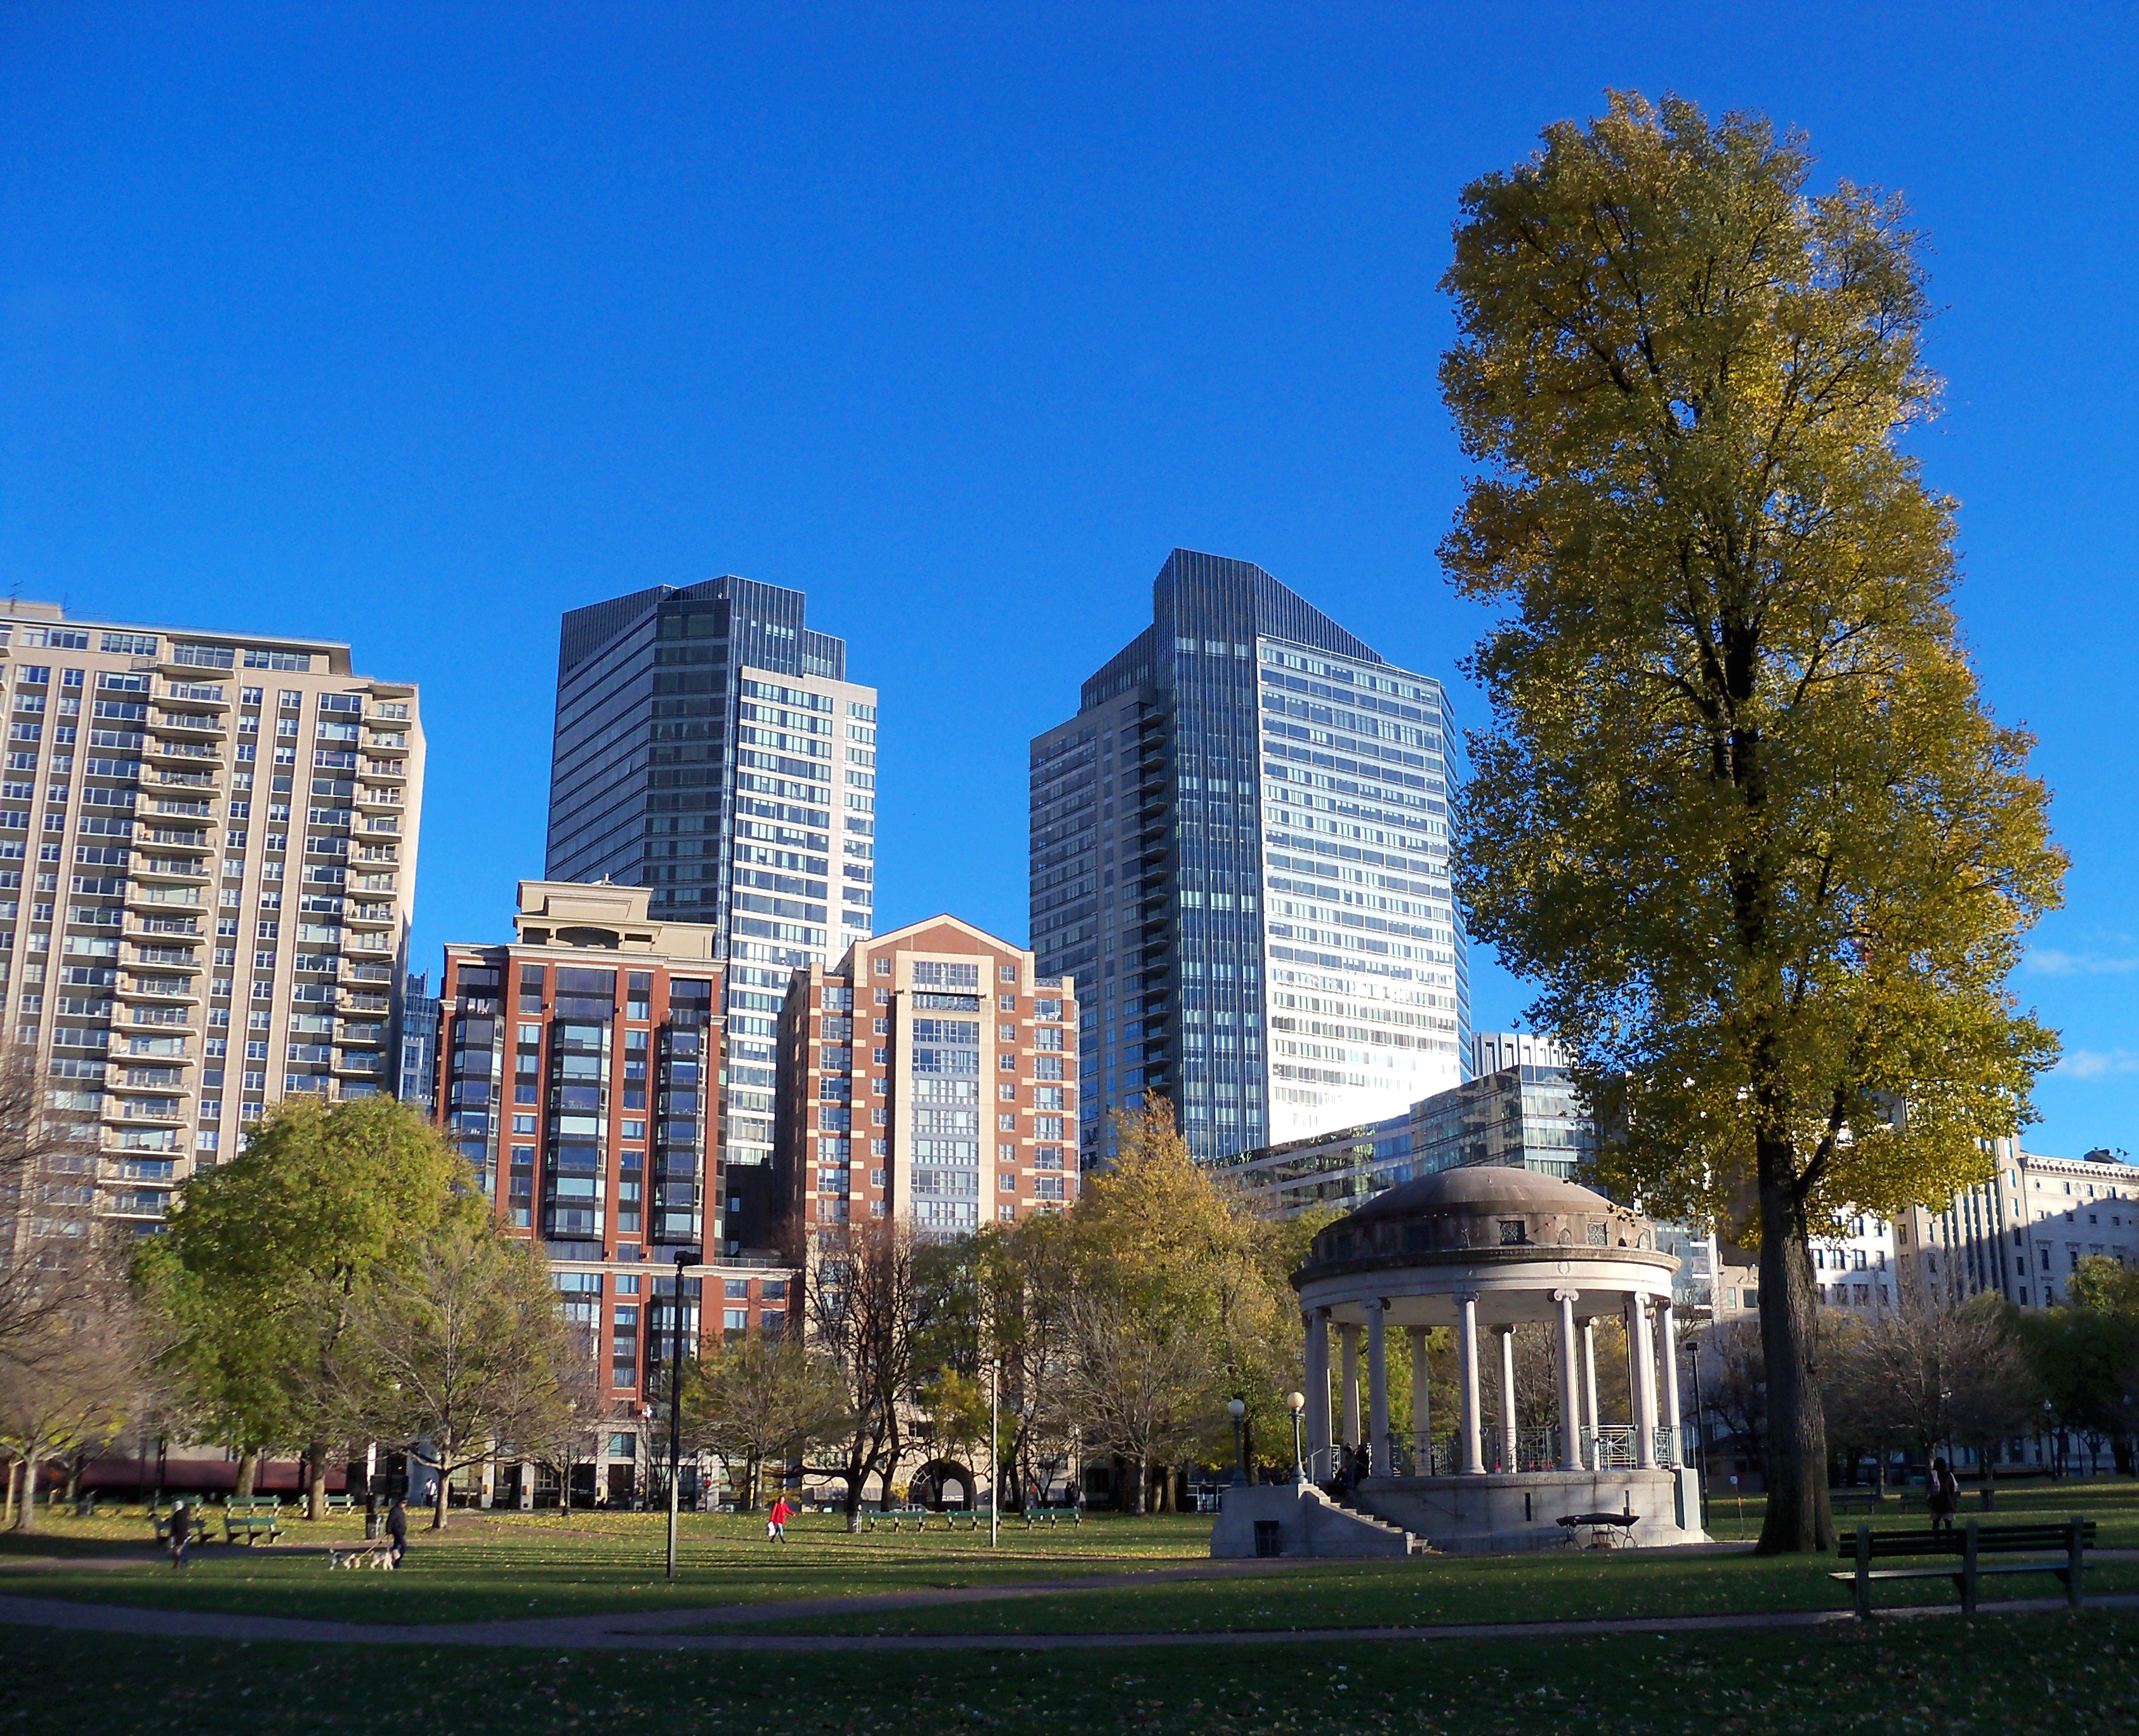 Boston Common (image from Wikimedia)